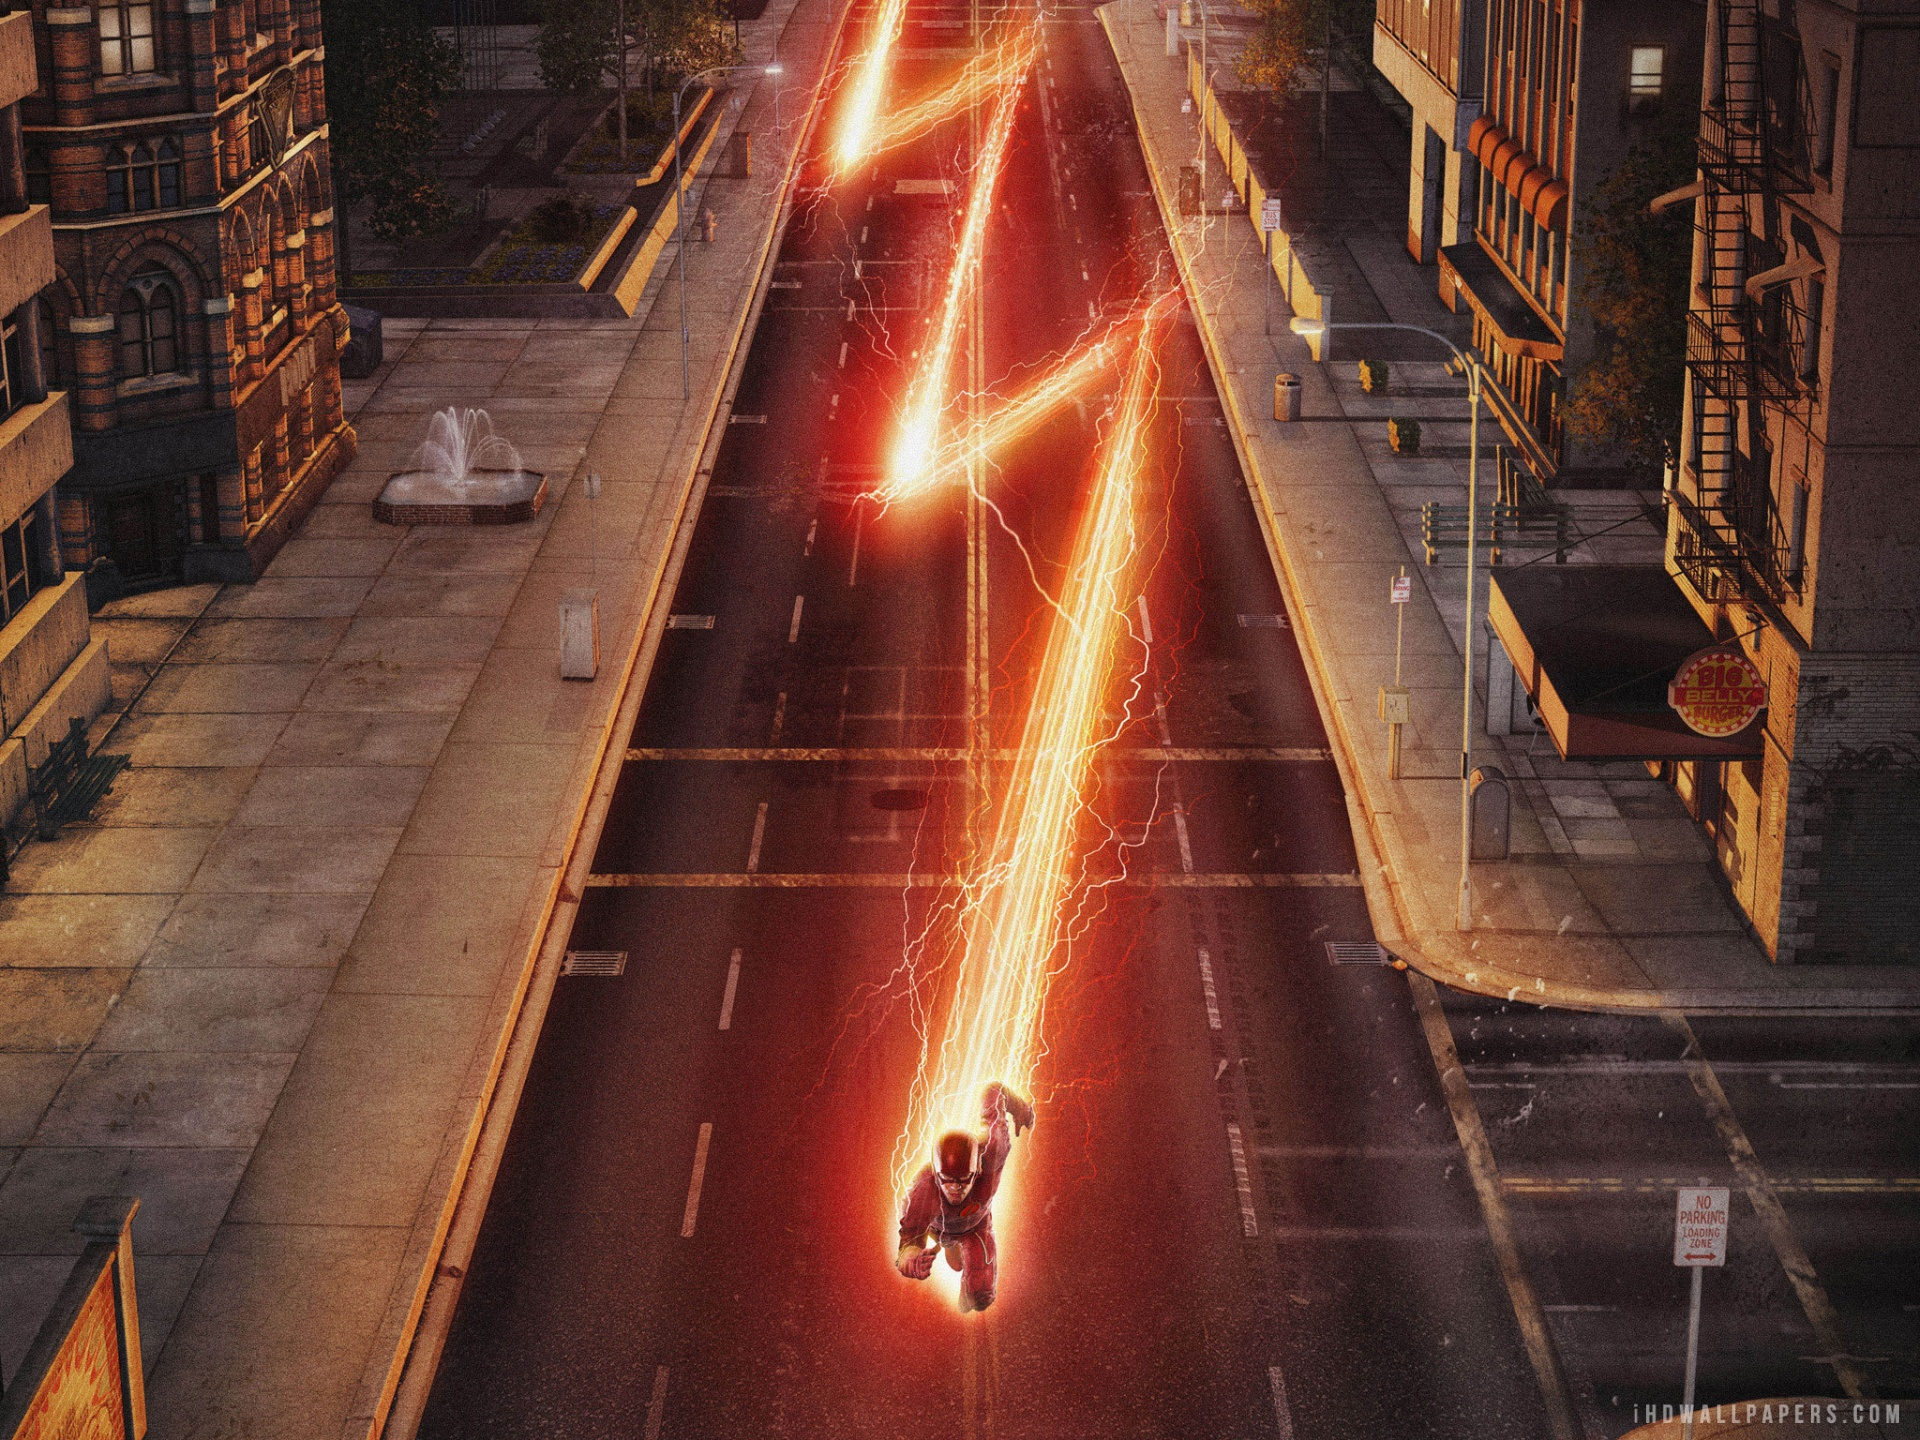 Cw The Flash Tv Series 2014 1920x1440